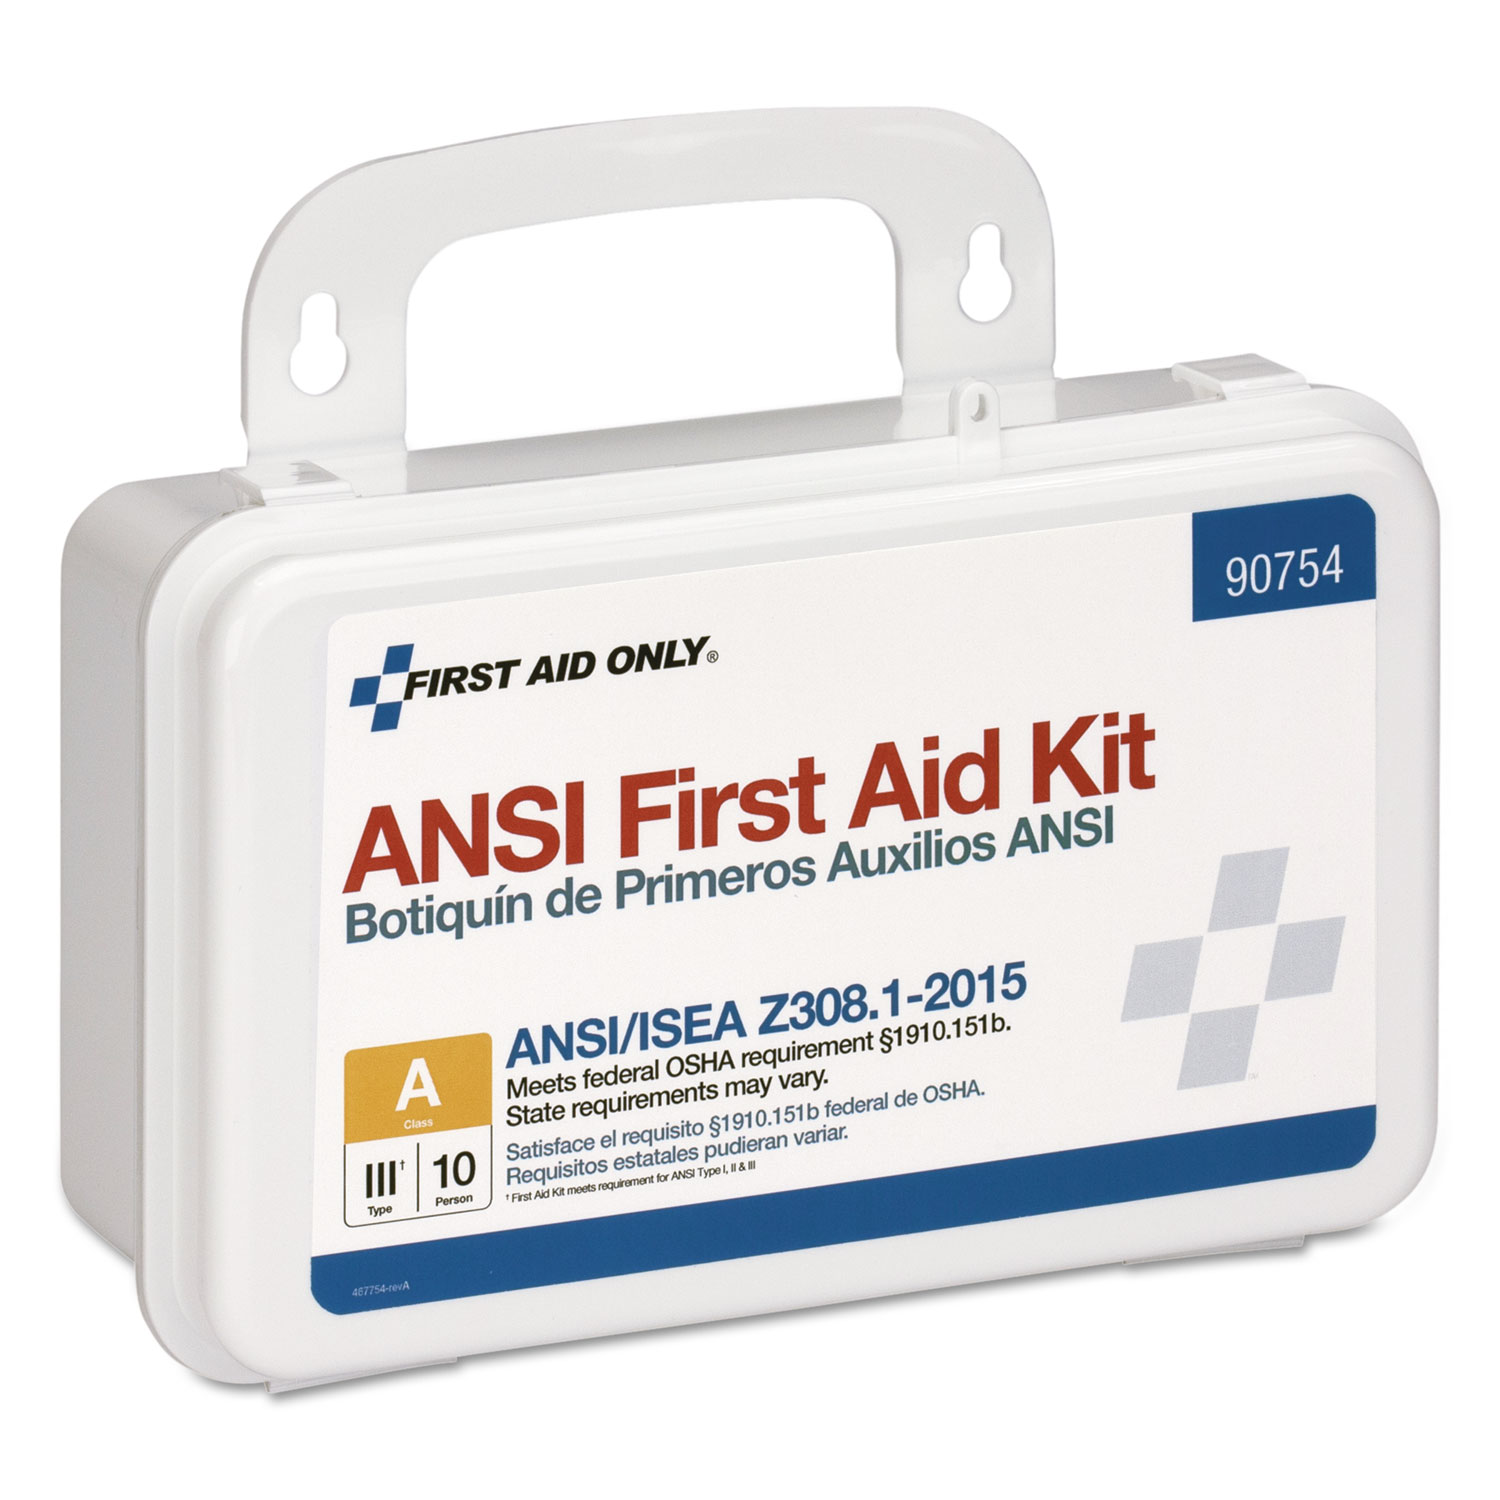 ANSI Class A 10 Person First Aid Kit, 71 Pieces - Action